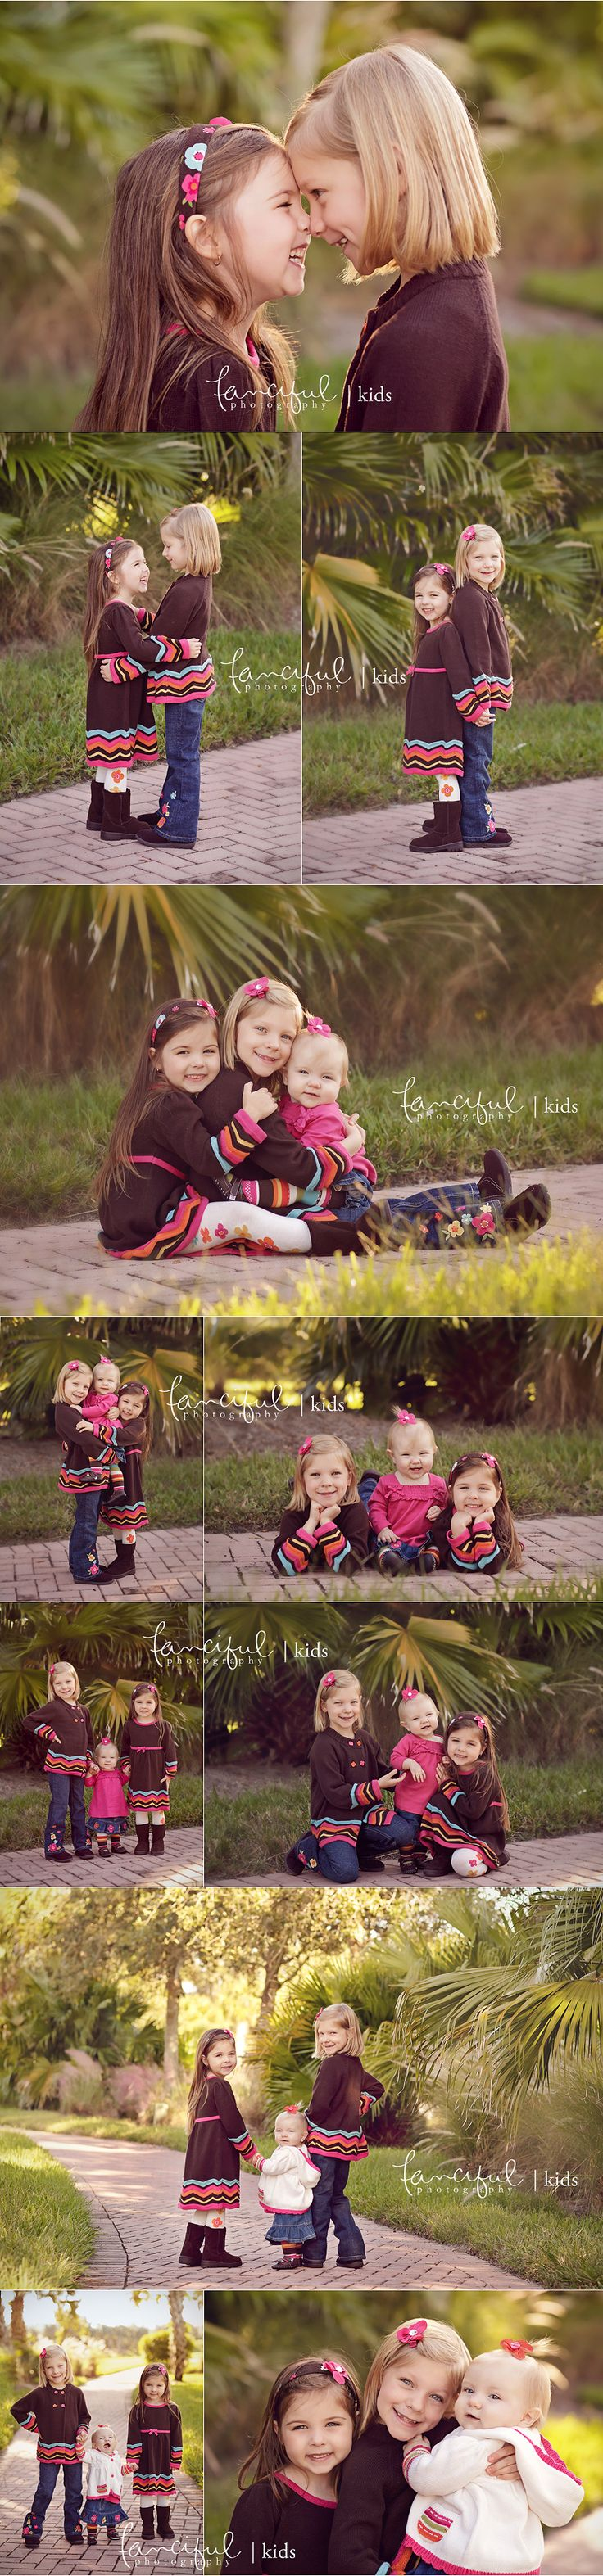 Adorable sibling photo shoot! Children's photography | sibling photos | outdoor children's photos